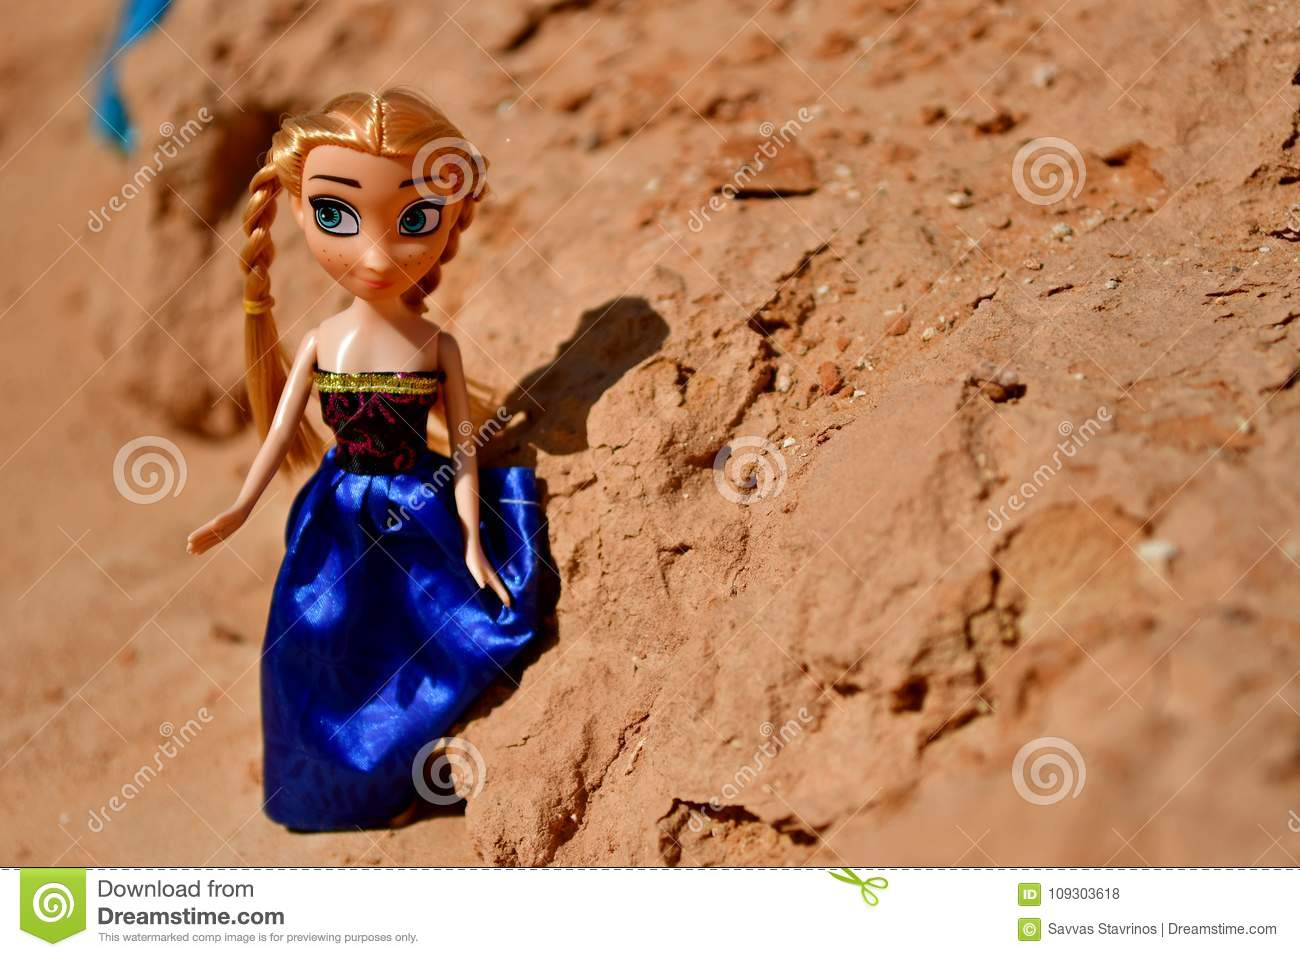 Blonde Dolls are playing in sand and walking together in a rocky area